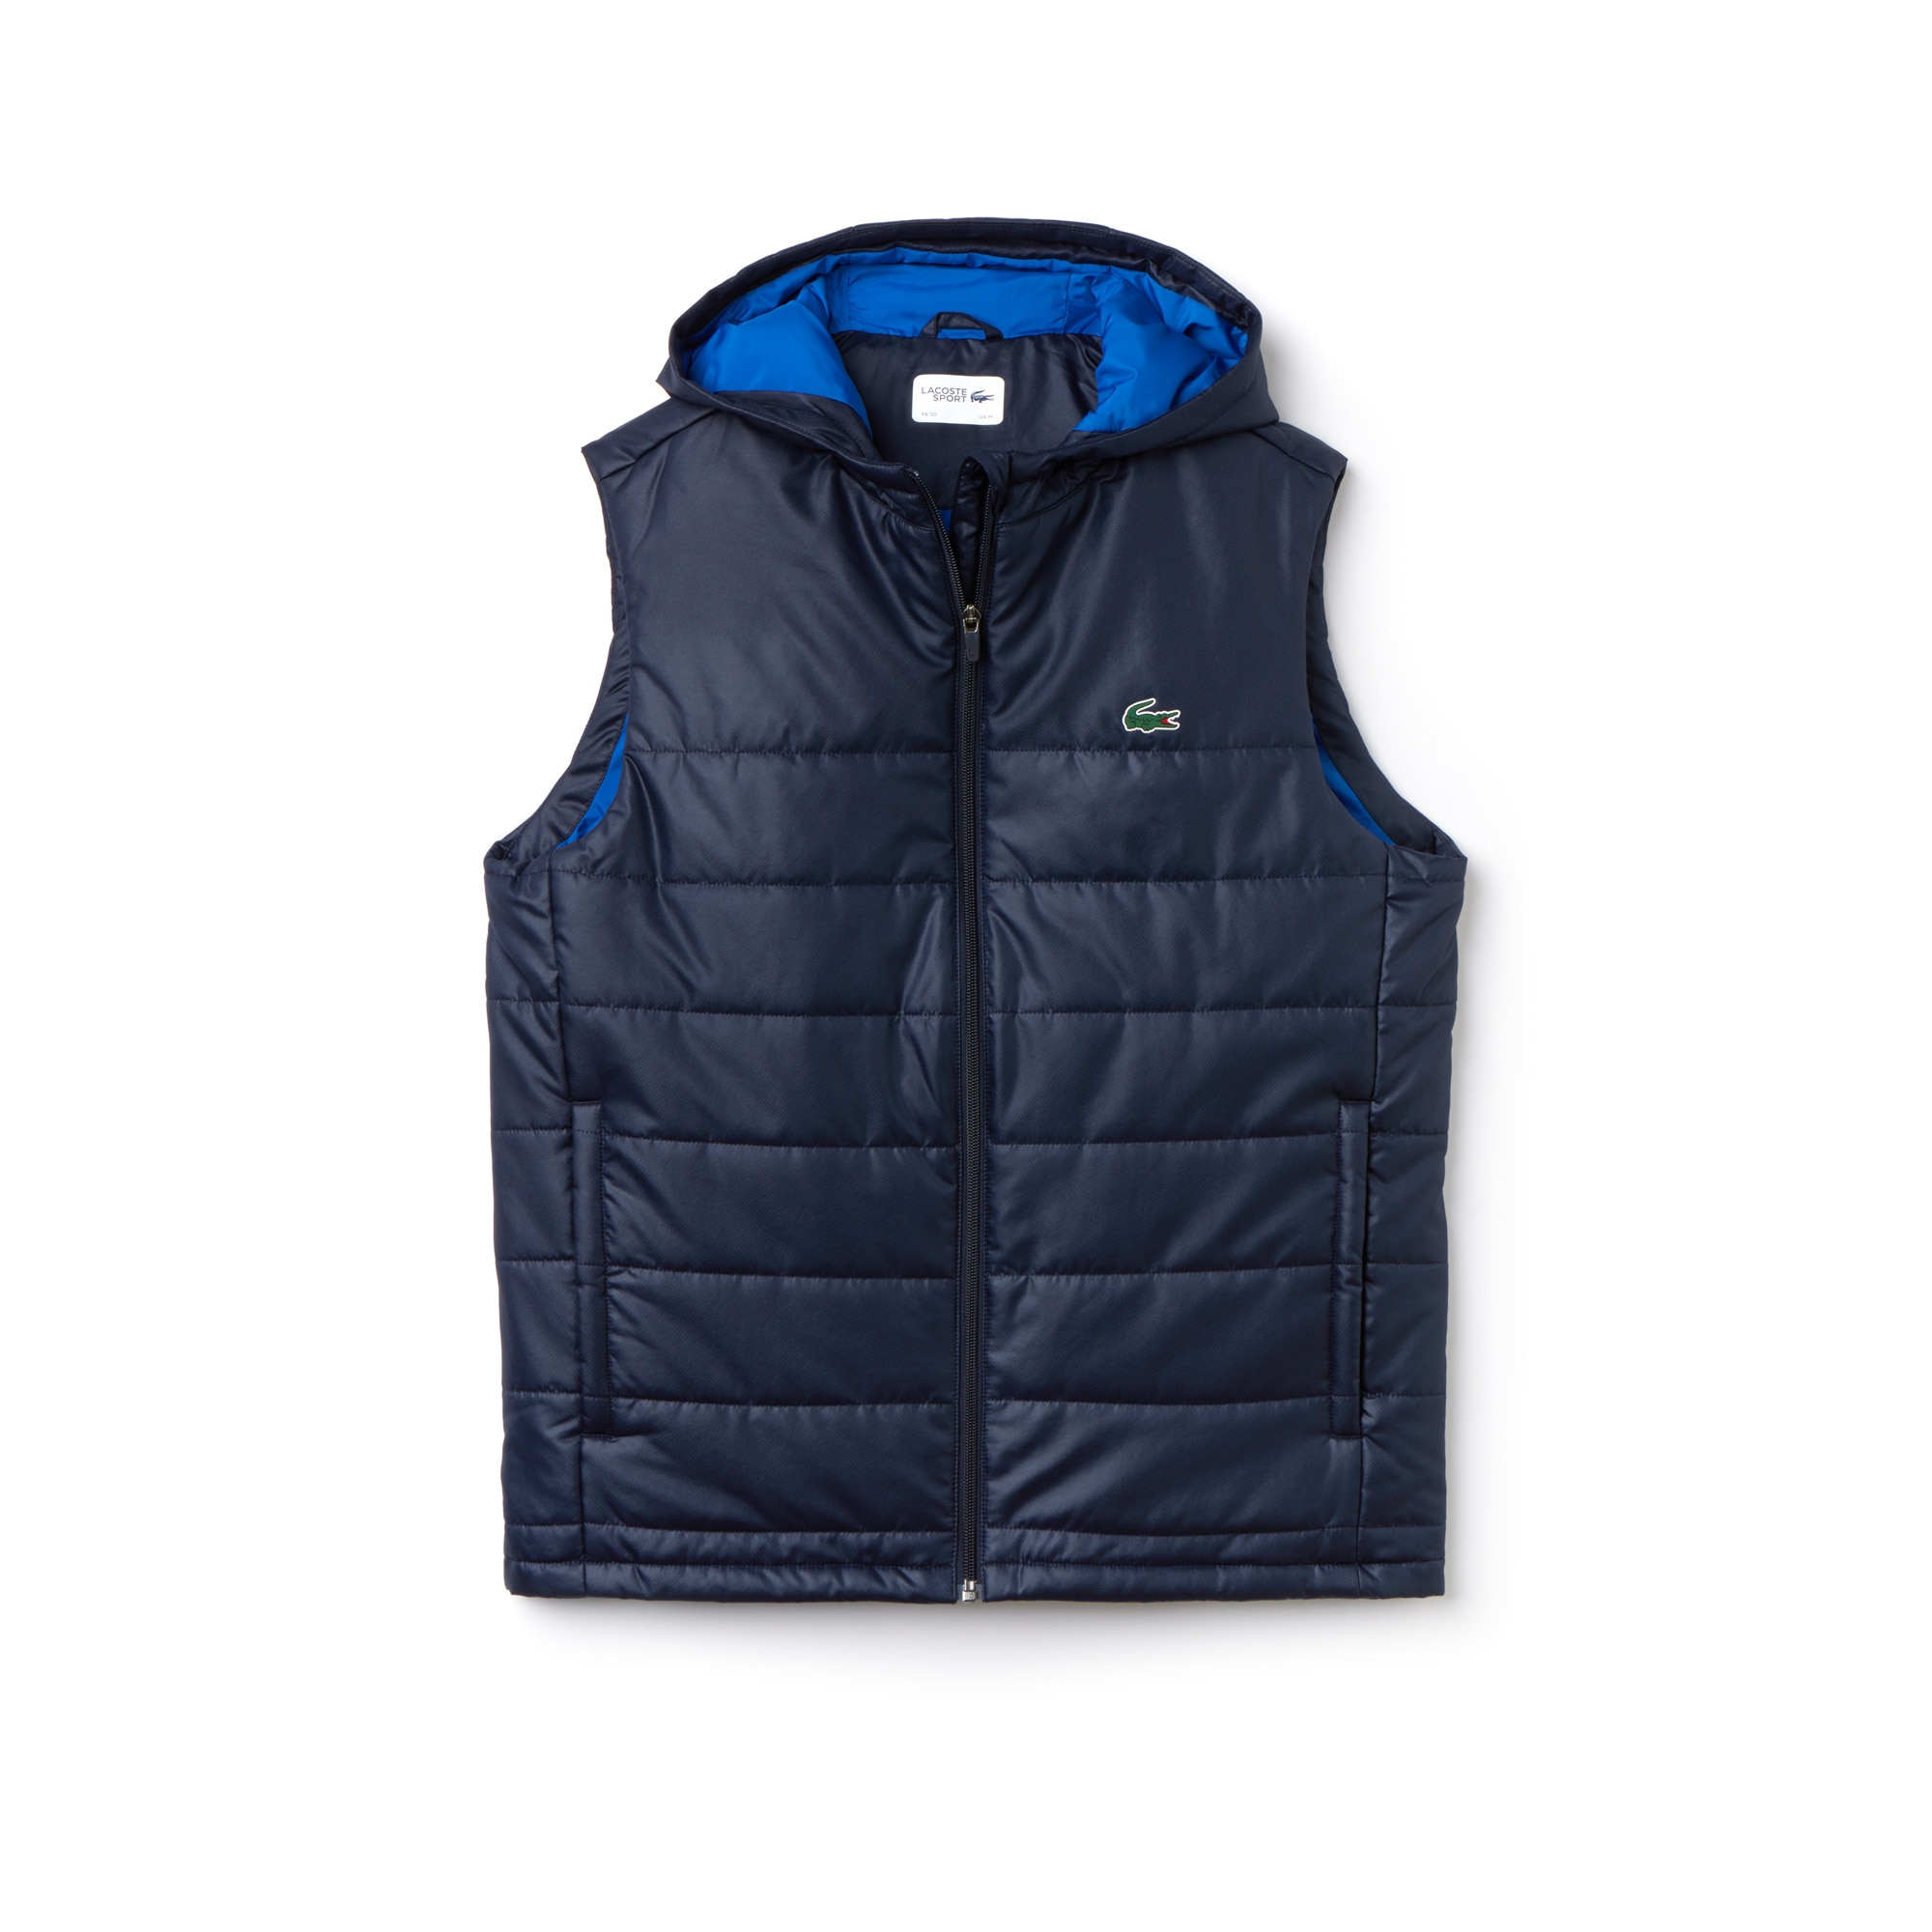 라코스테 Lacoste Mens SPORT Technical Taffeta Tennis Vest,navy blue/royal blue